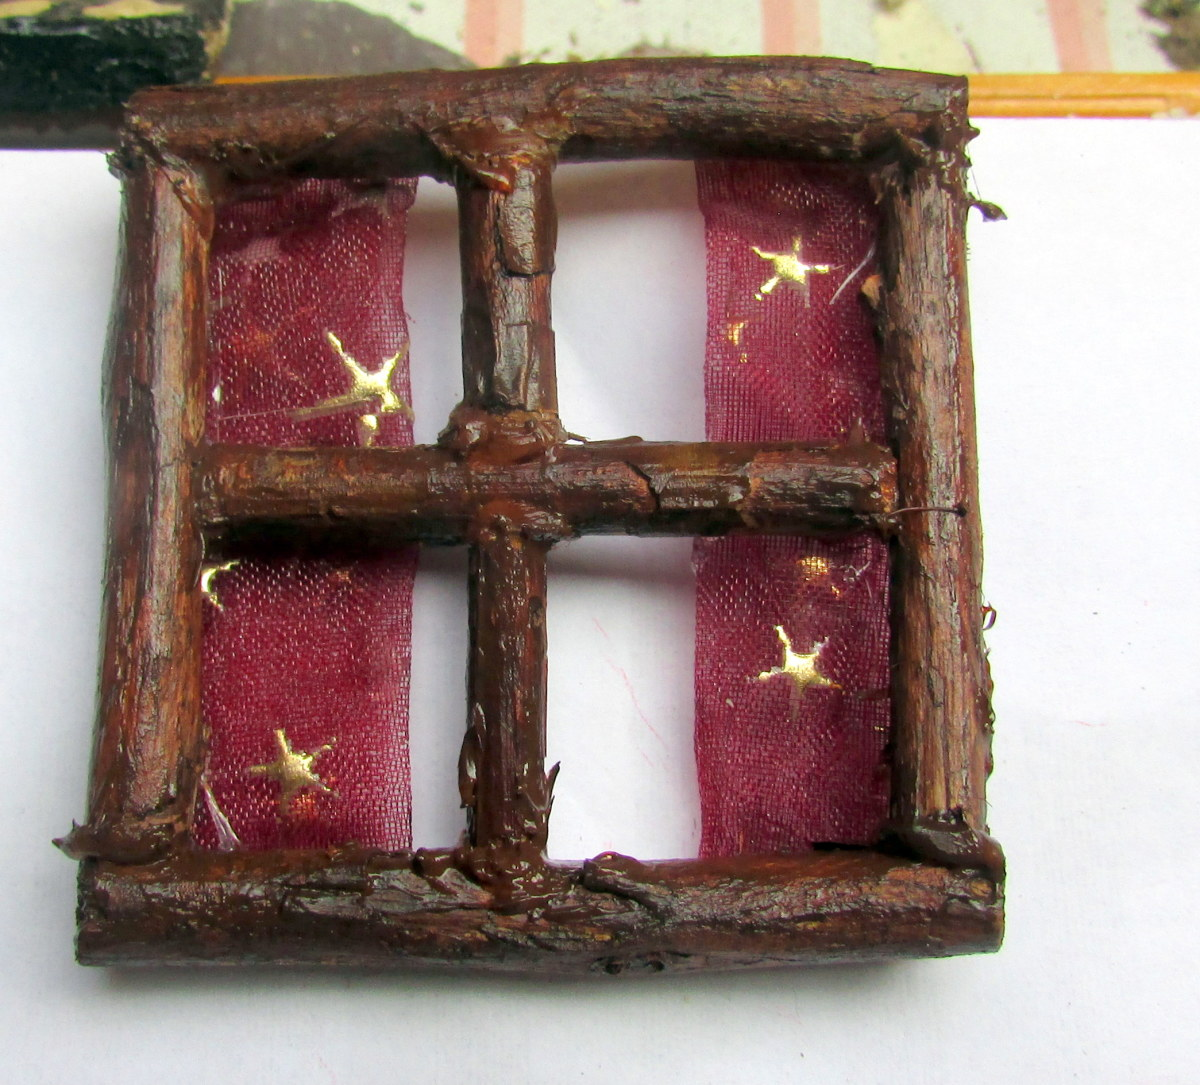 How To Make a Window for a Fairy House